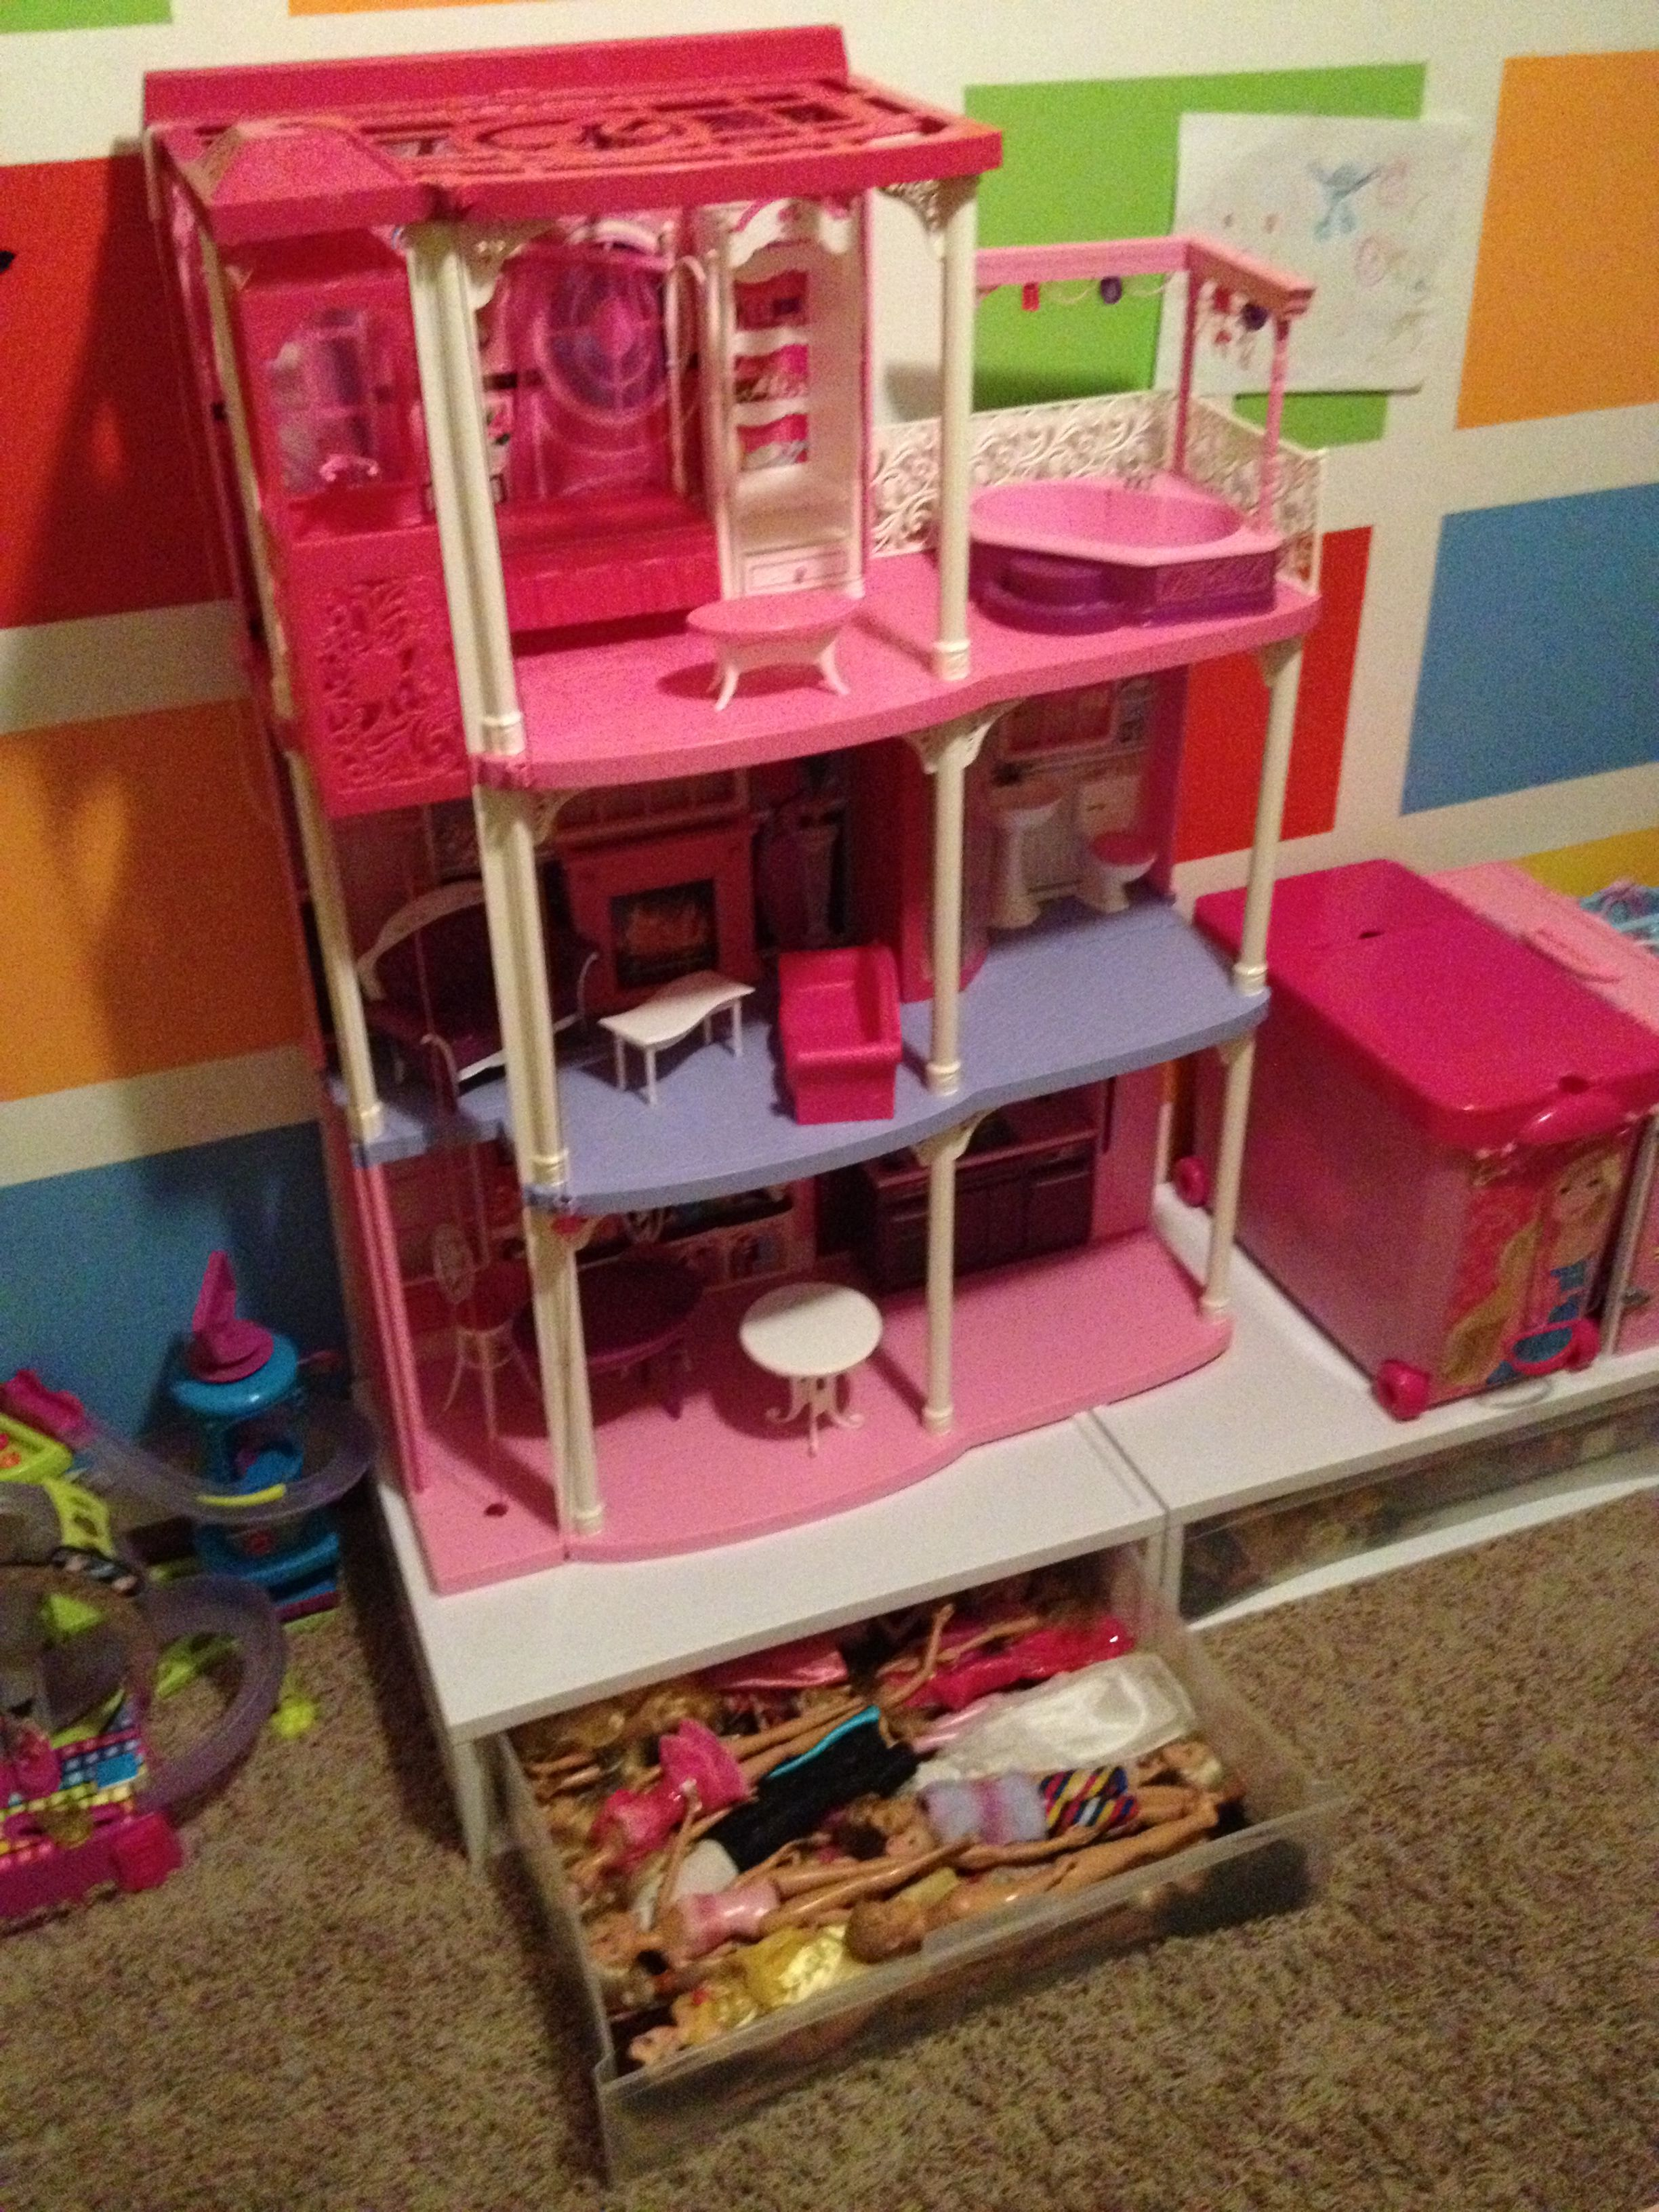 Plastic Storage Drawers Under The Barbie Dream Houseso Smart